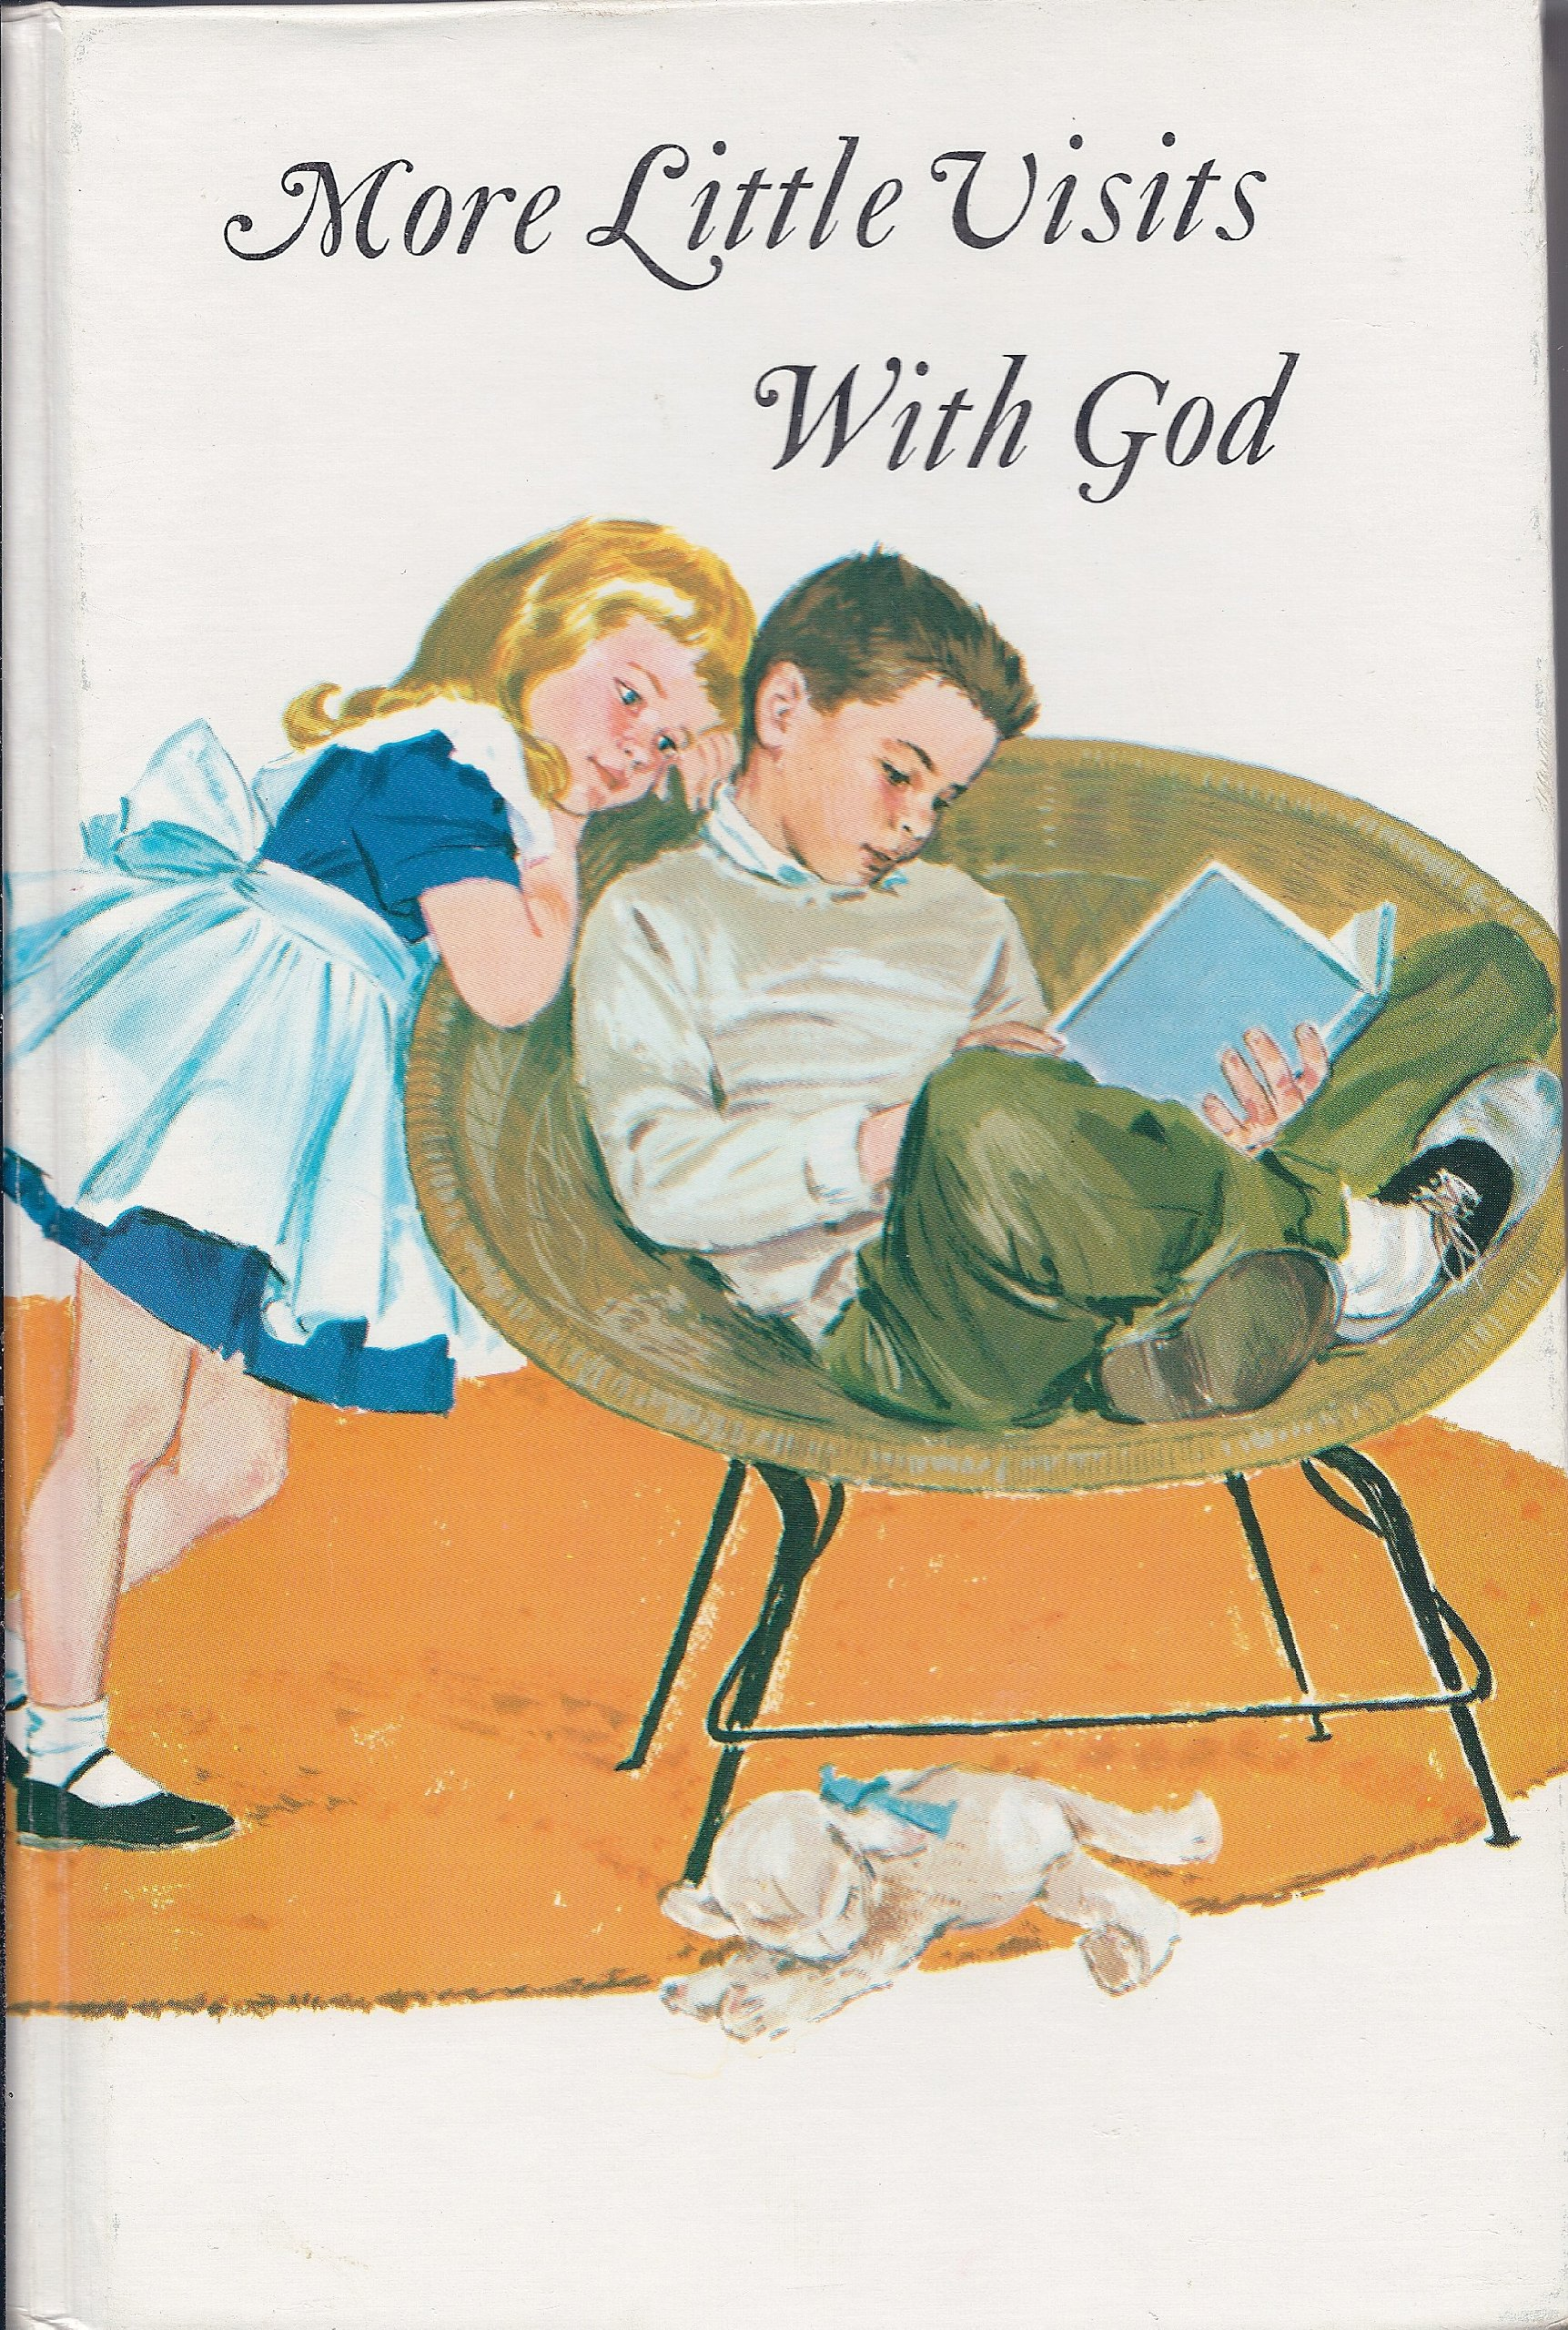 More Little Visits With God: A.H. Jahsmann: 9780570030171: Books - Amazon.ca